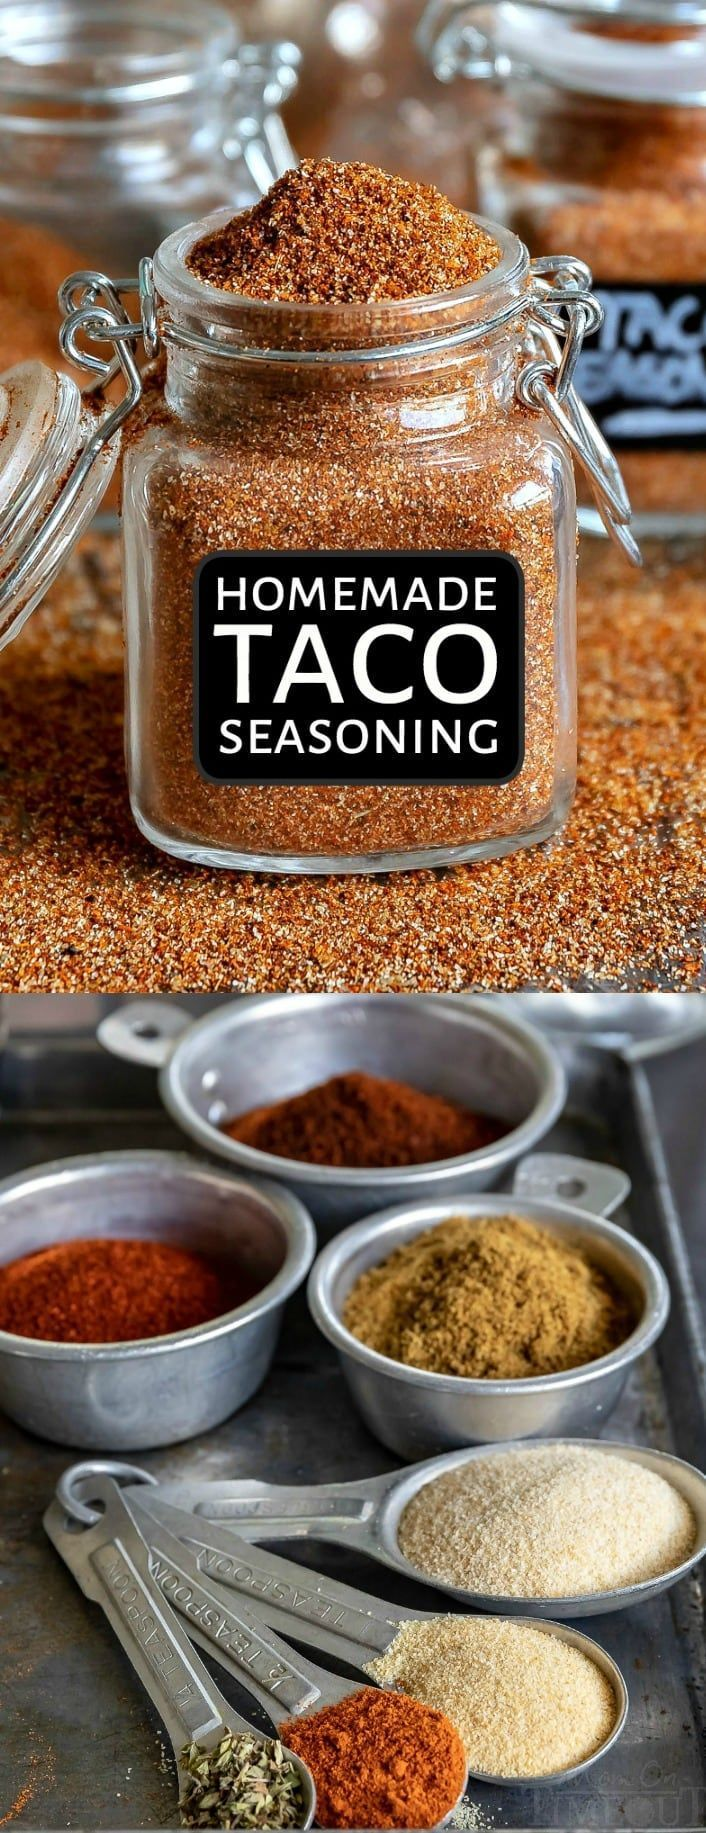 This easy homemade Taco Seasoning recipe is a pantry